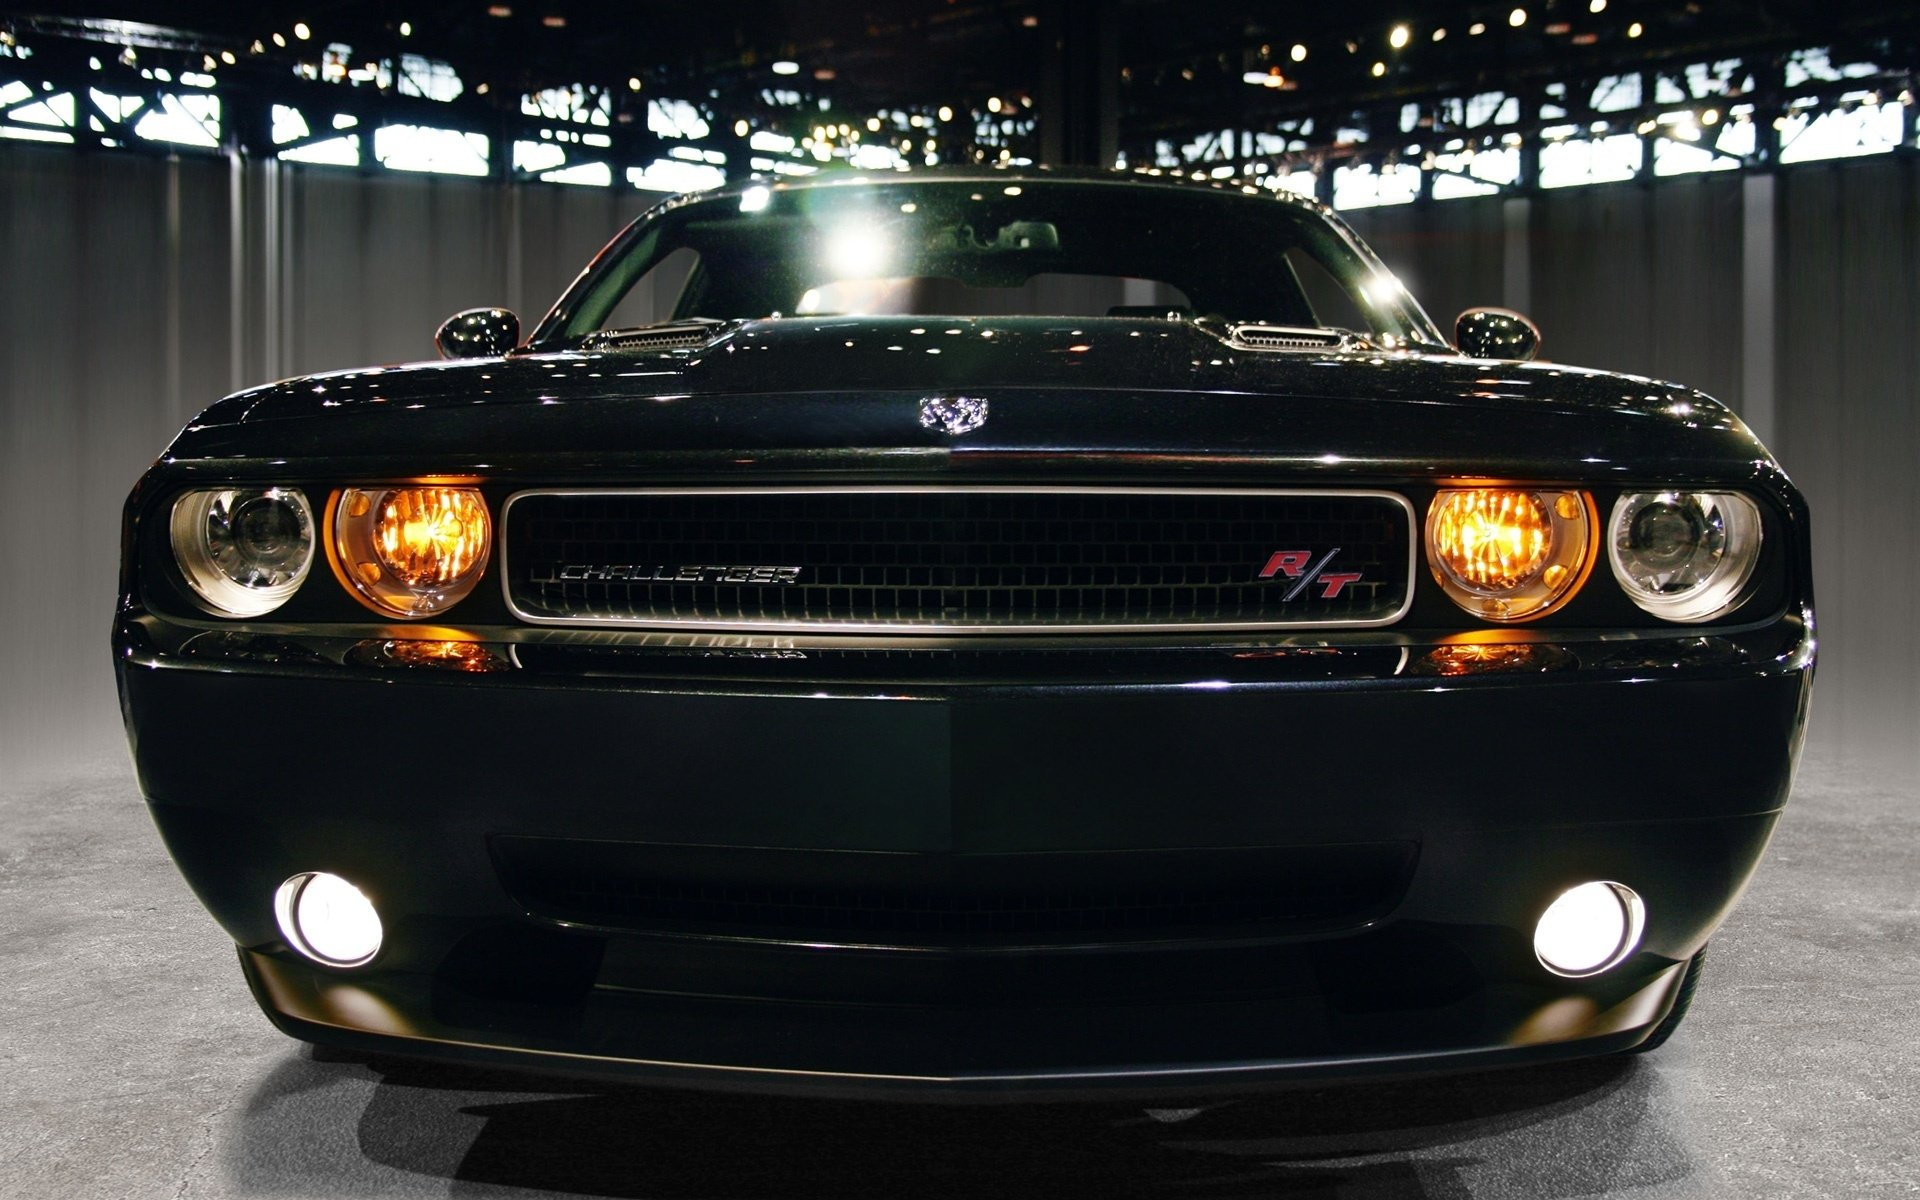 2018 Hellcat Charger >> Dodge Challenger RT Full HD Wallpaper and Background Image ...